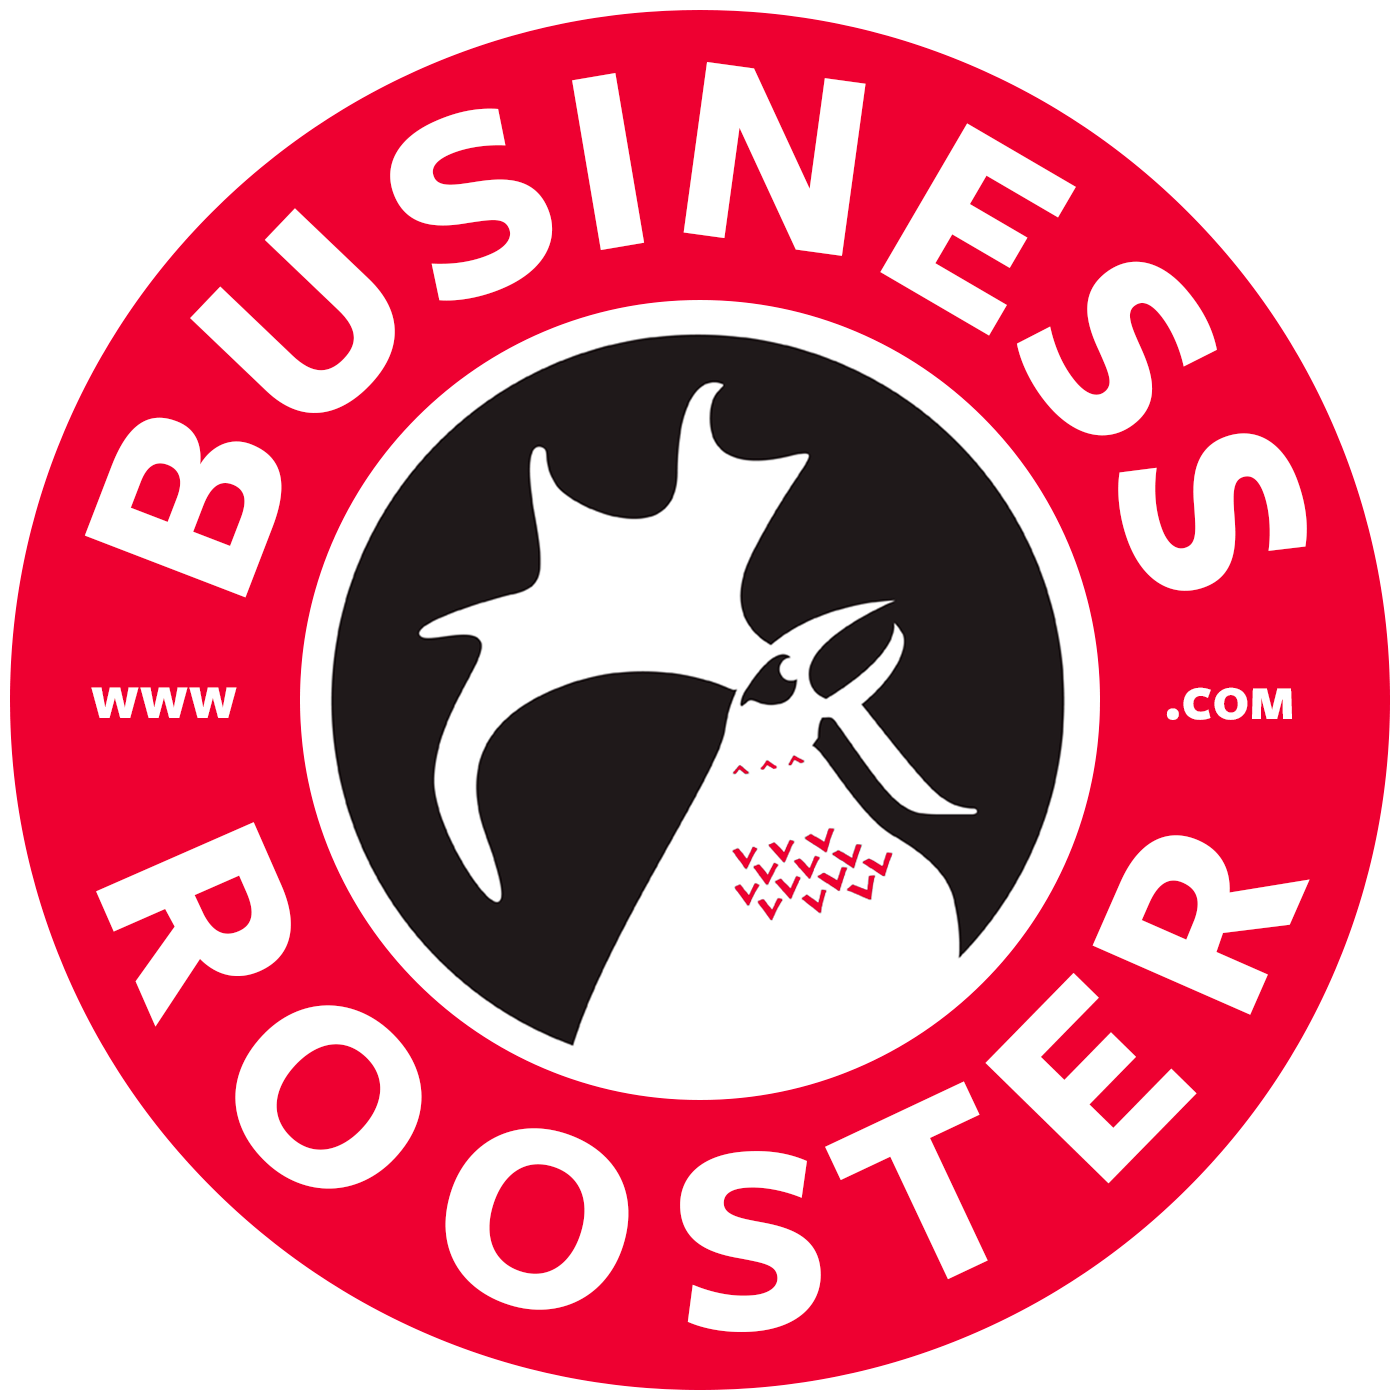 Business Rooster